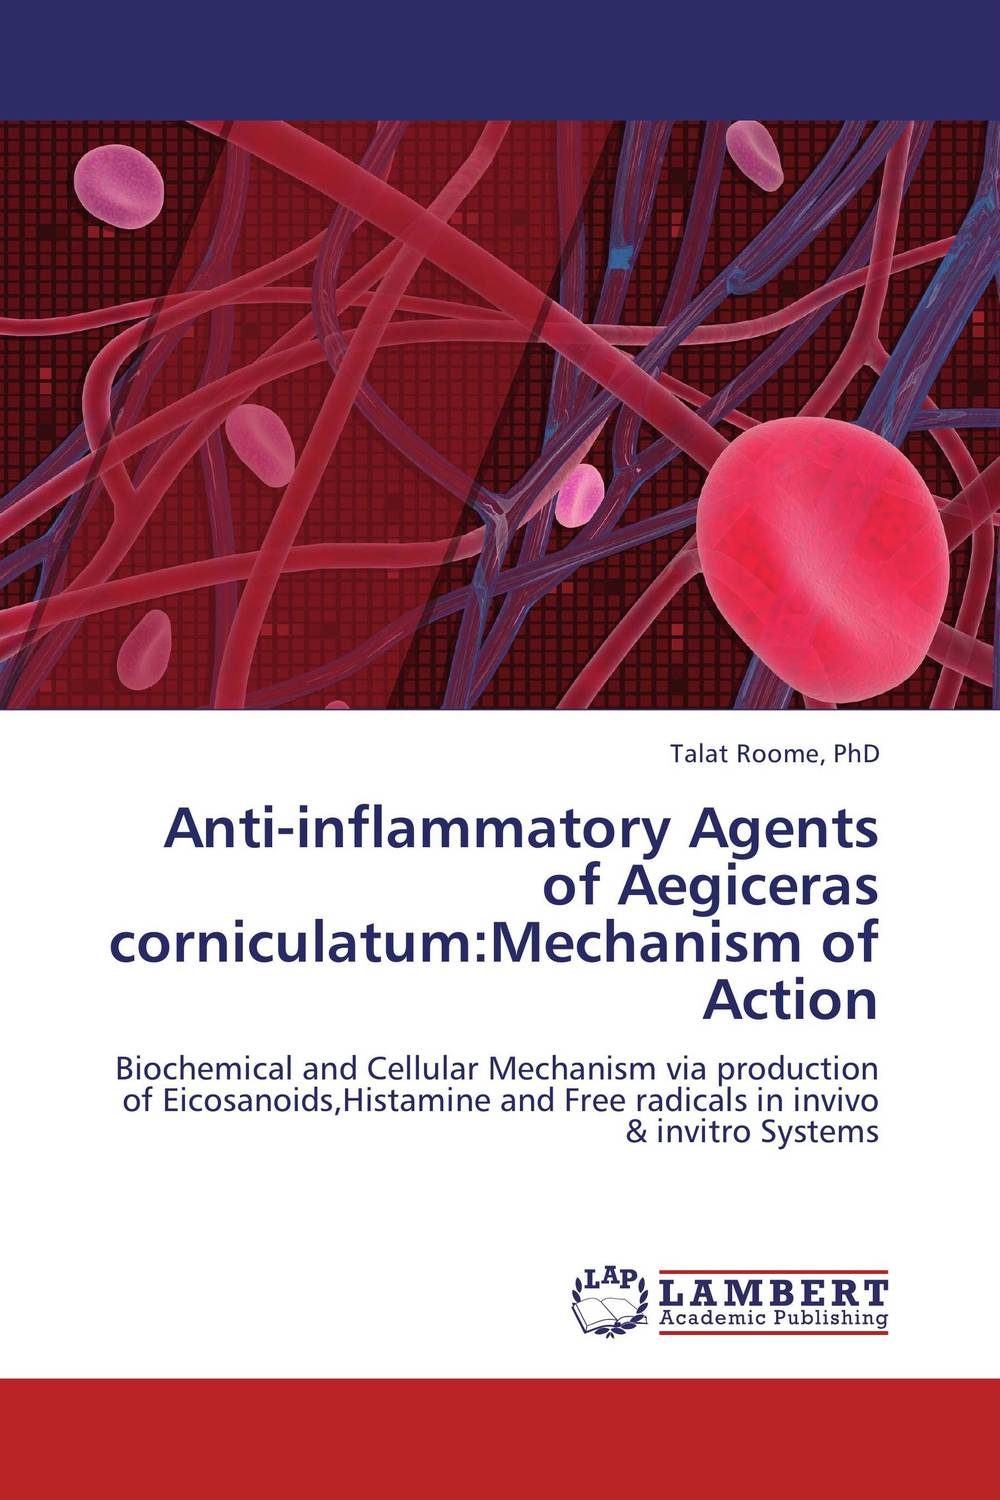 Anti-inflammatory Agents of Aegiceras corniculatum:Mechanism of Action arumugam madeswaran computational studies of anti inflammatory activity of some flavonoids